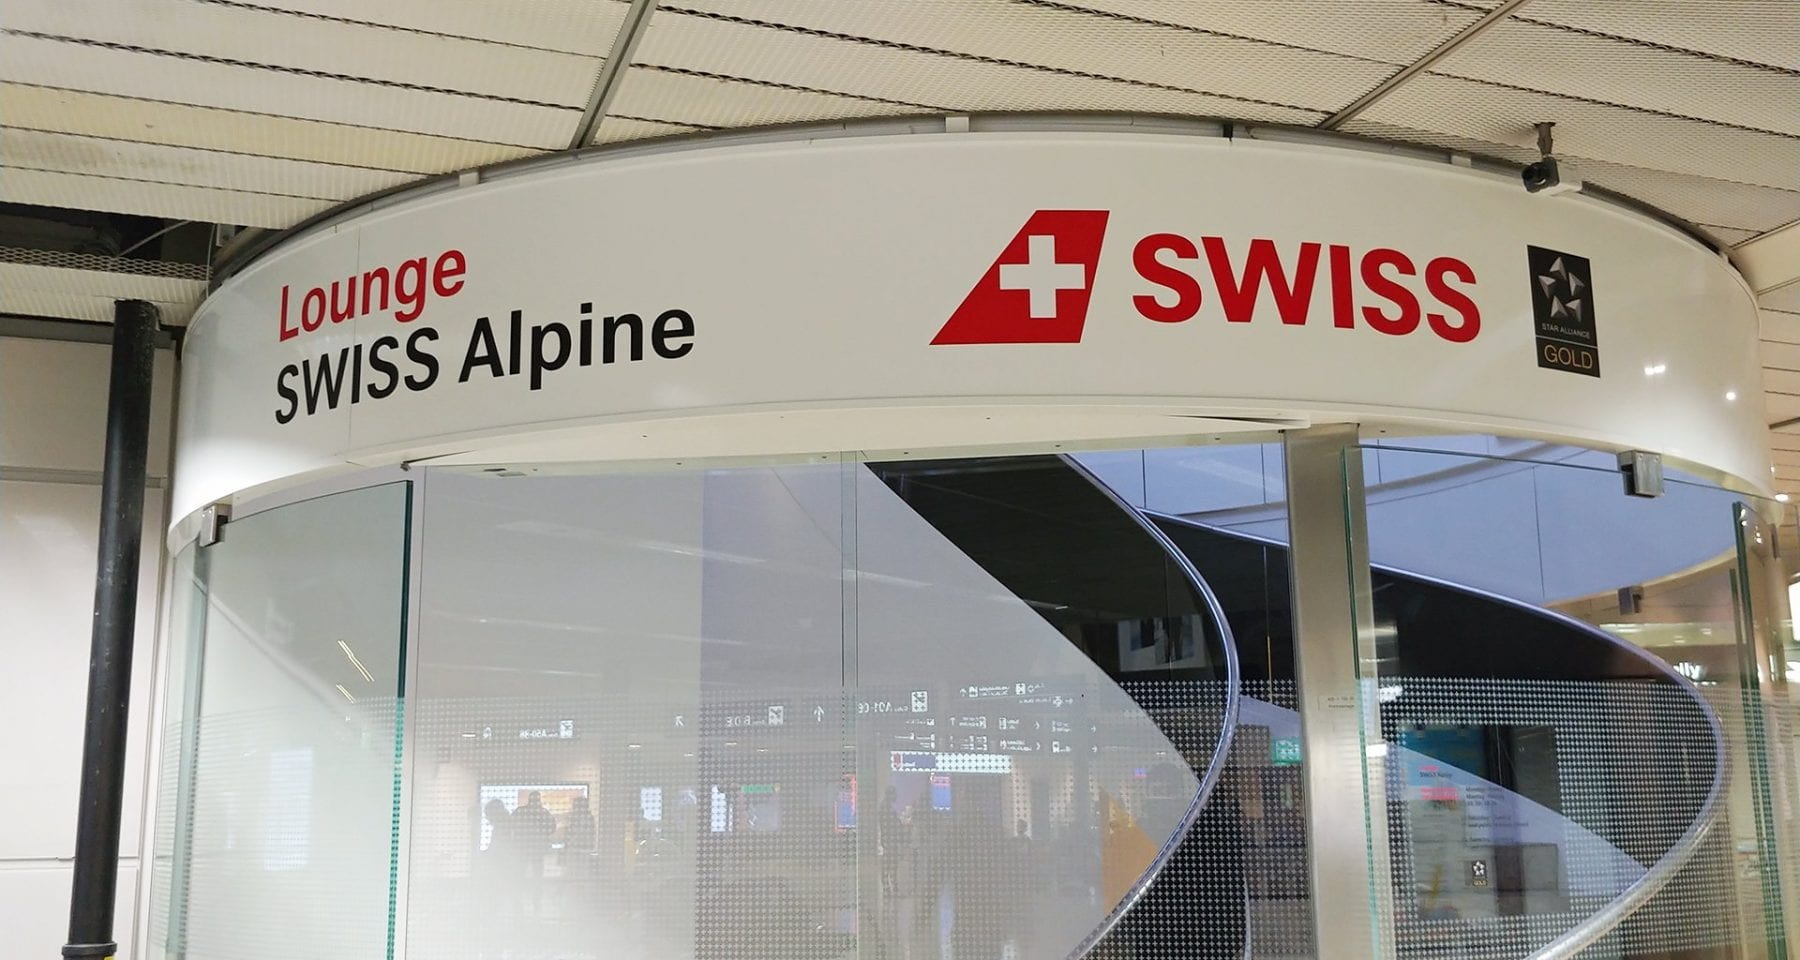 swiss alpine loung entrance